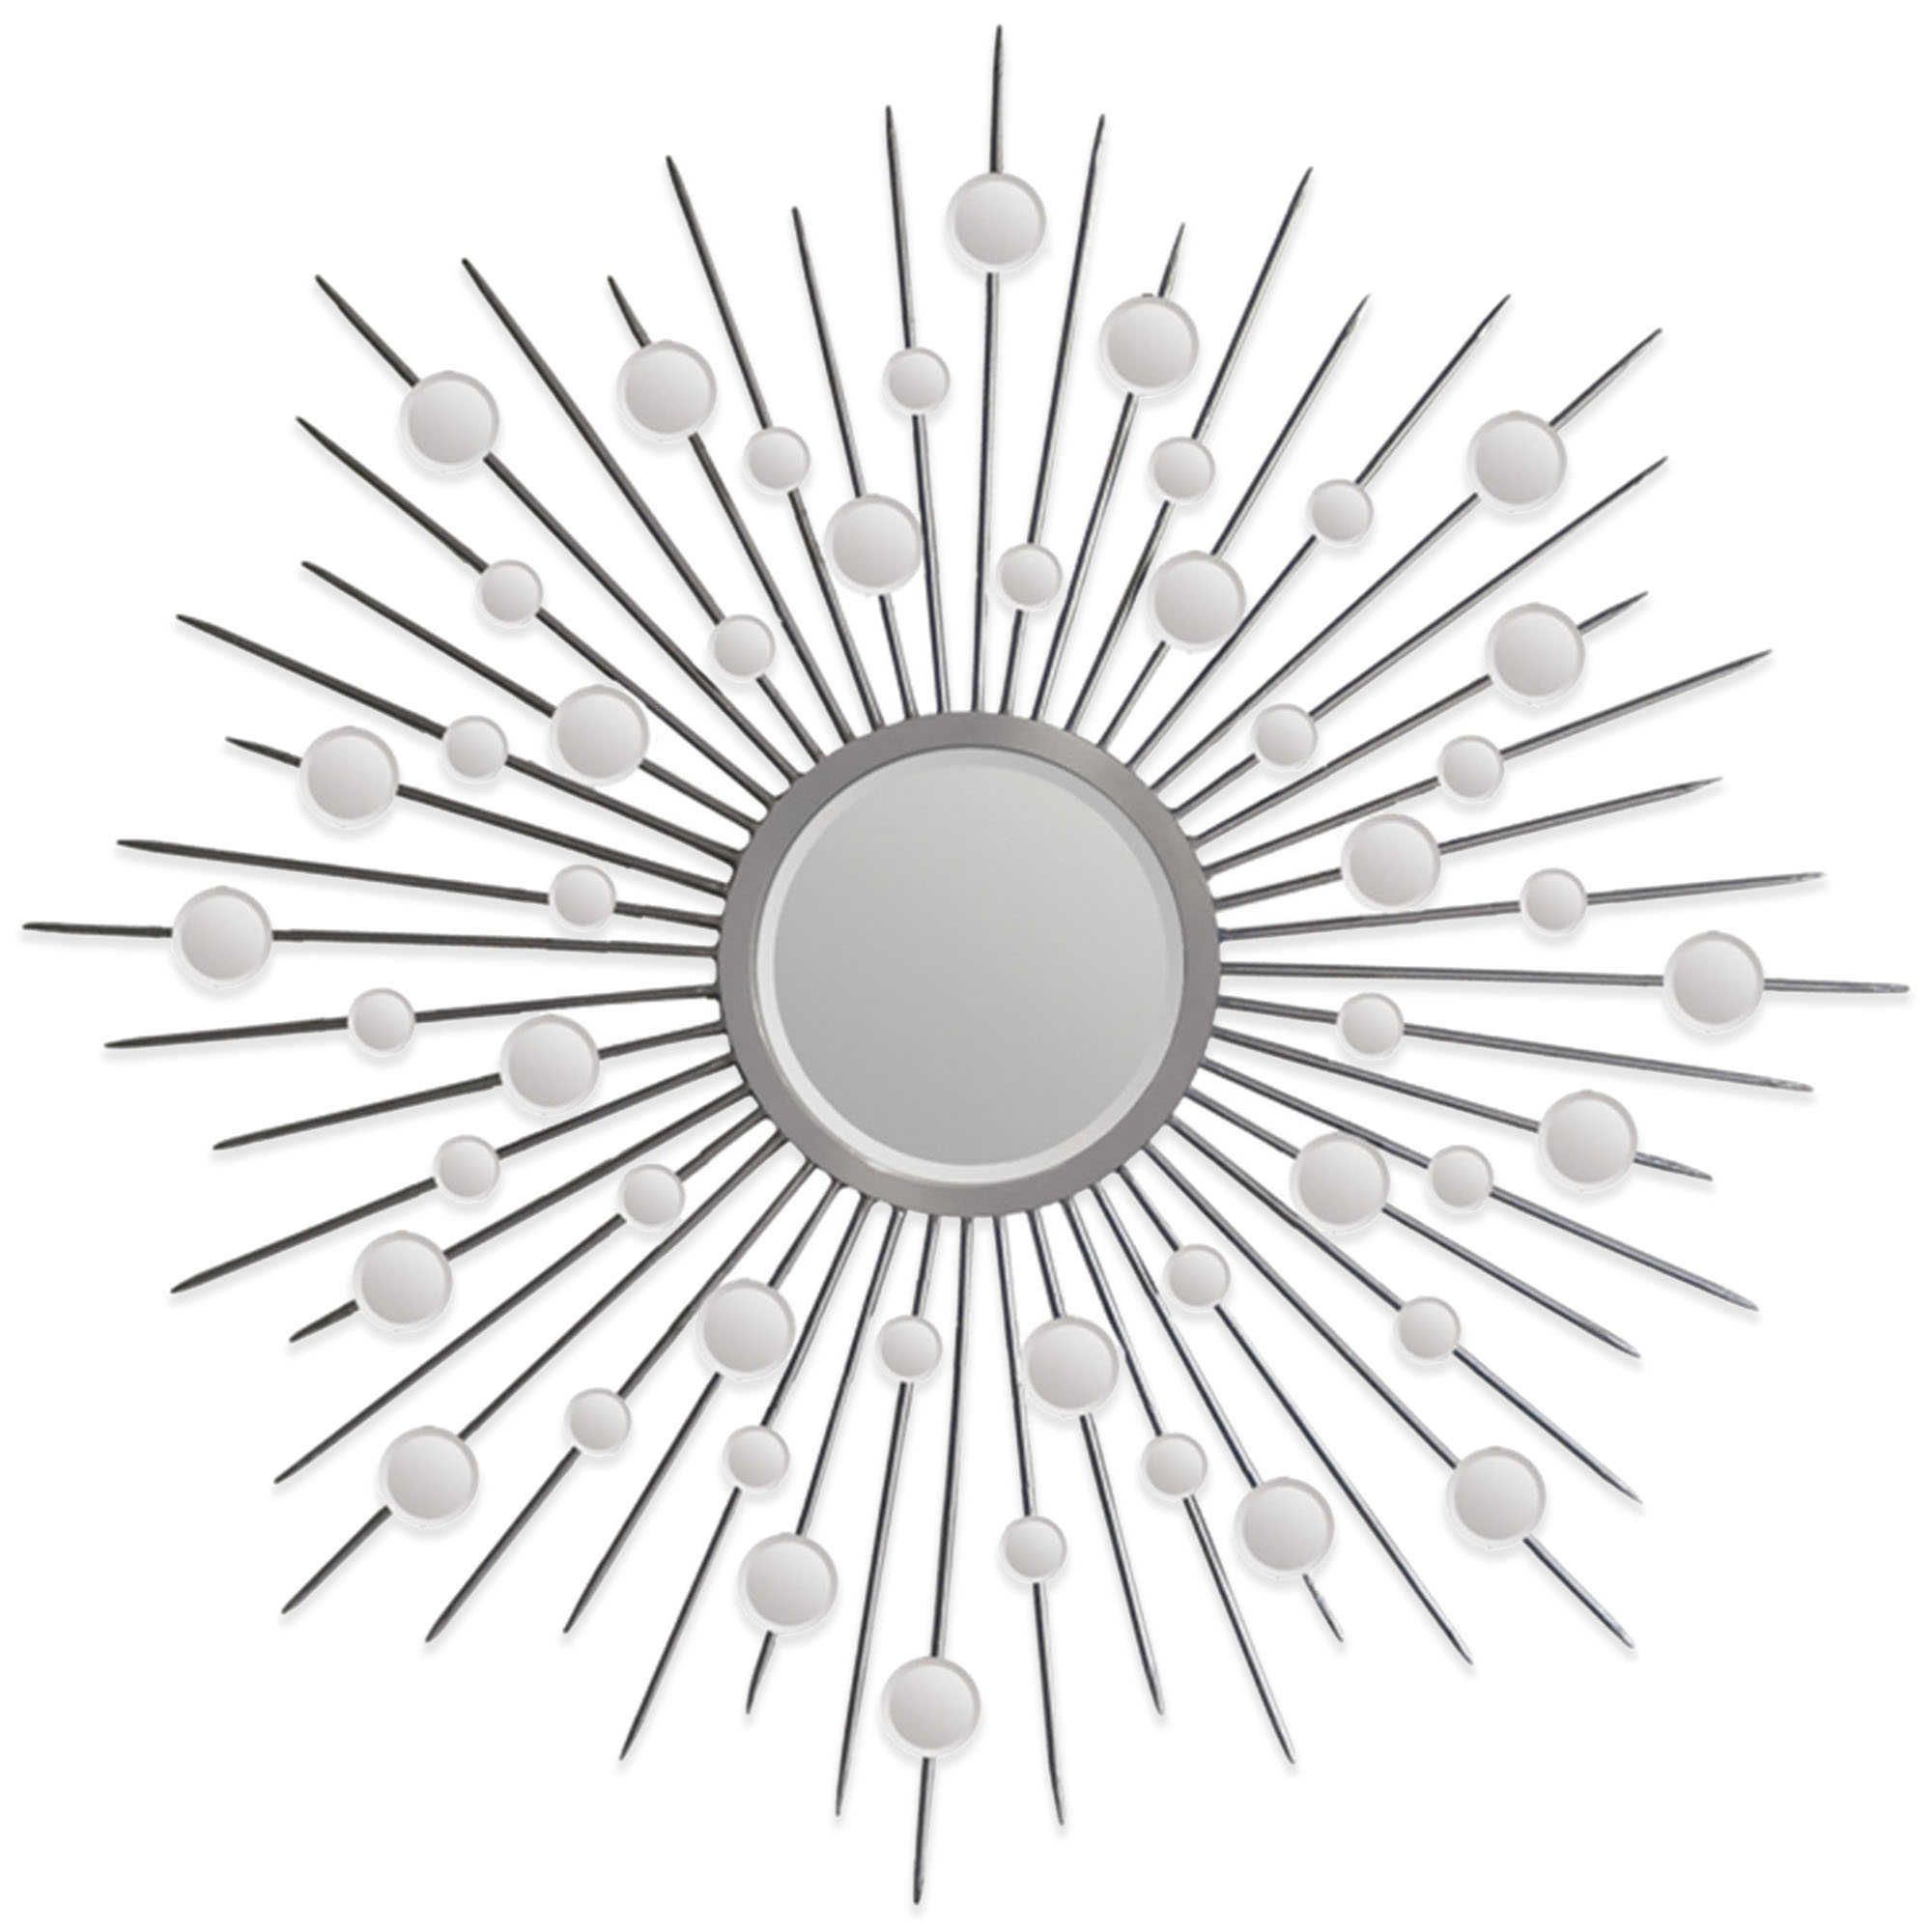 Ren Wil 45 Inch X 45 Inch Starburst Onice Mirror In Silver Within Estrela Modern Sunburst Metal Wall Mirrors (Gallery 22 of 30)